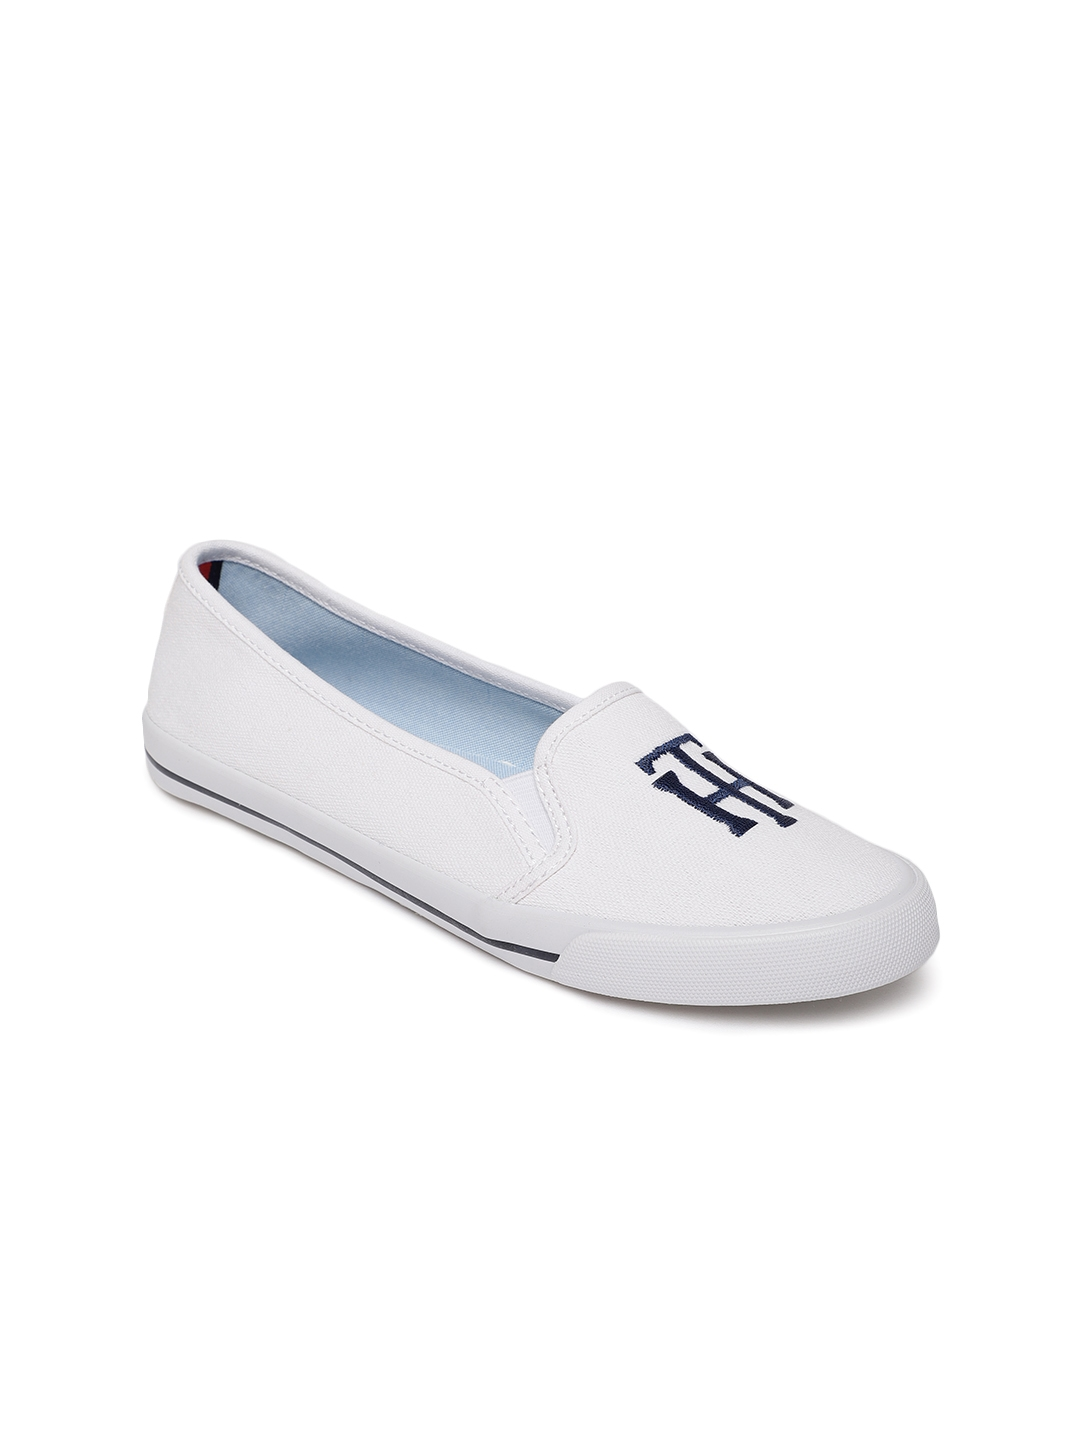 3bb6f56b6d Buy Tommy Hilfiger Women White Printed Sneakers - Casual Shoes for ...